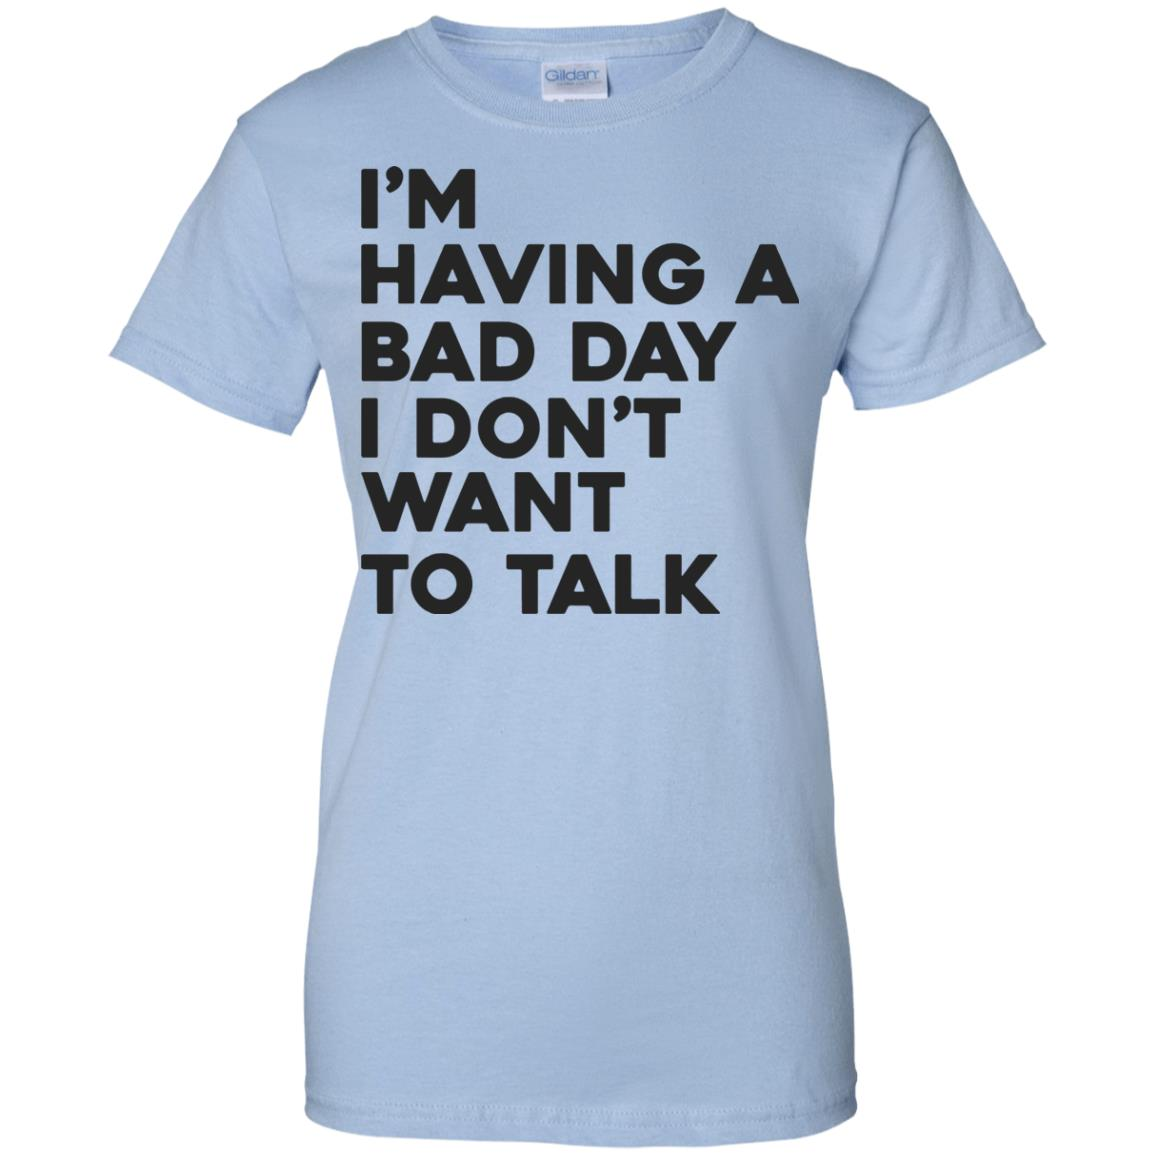 image 245px I'm having a bad day I don't want to talk t shirt, hoodies, tank